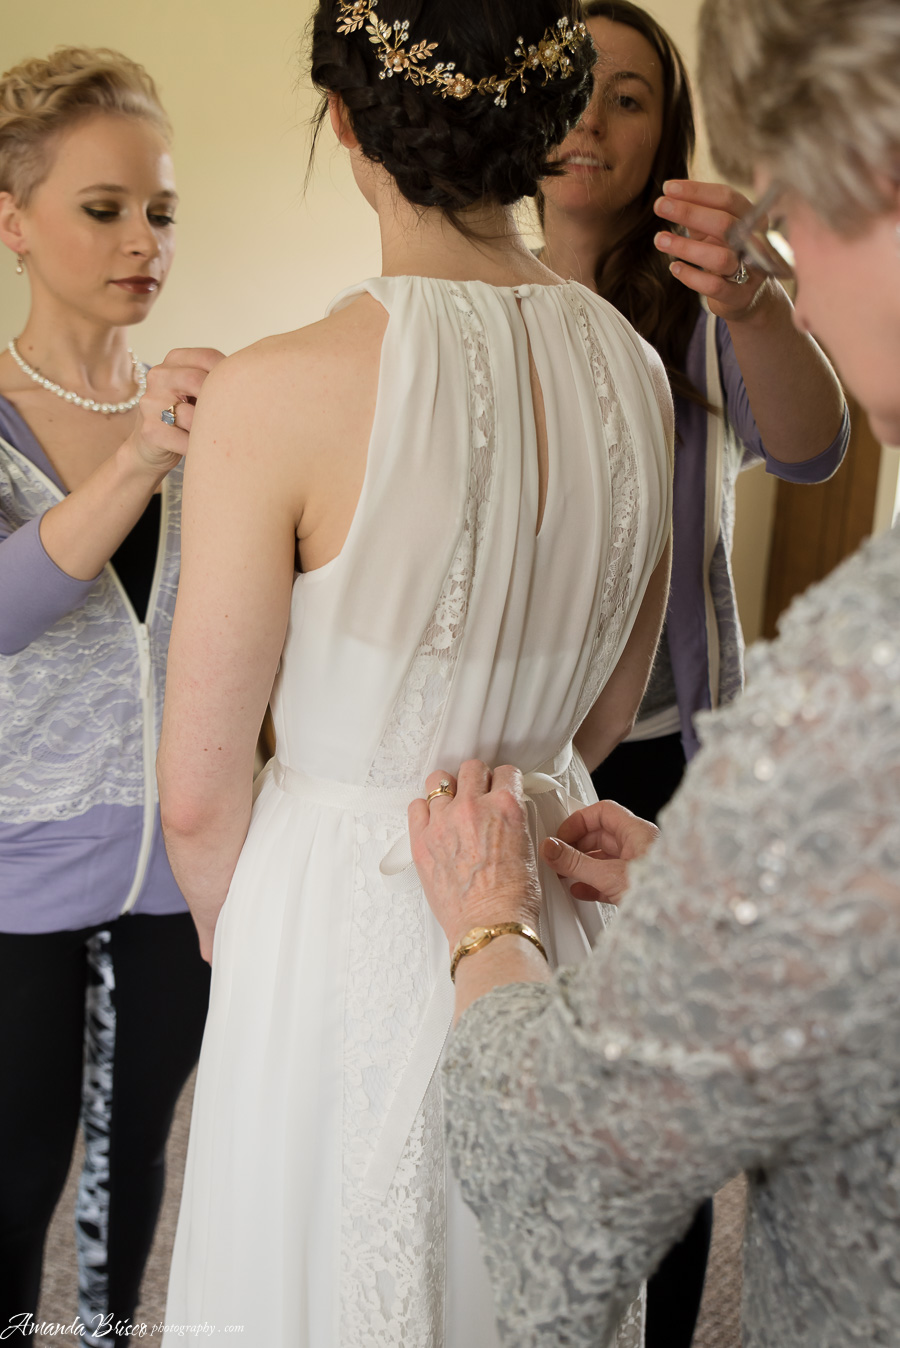 Bride Getting Ready | cookingalamel.com